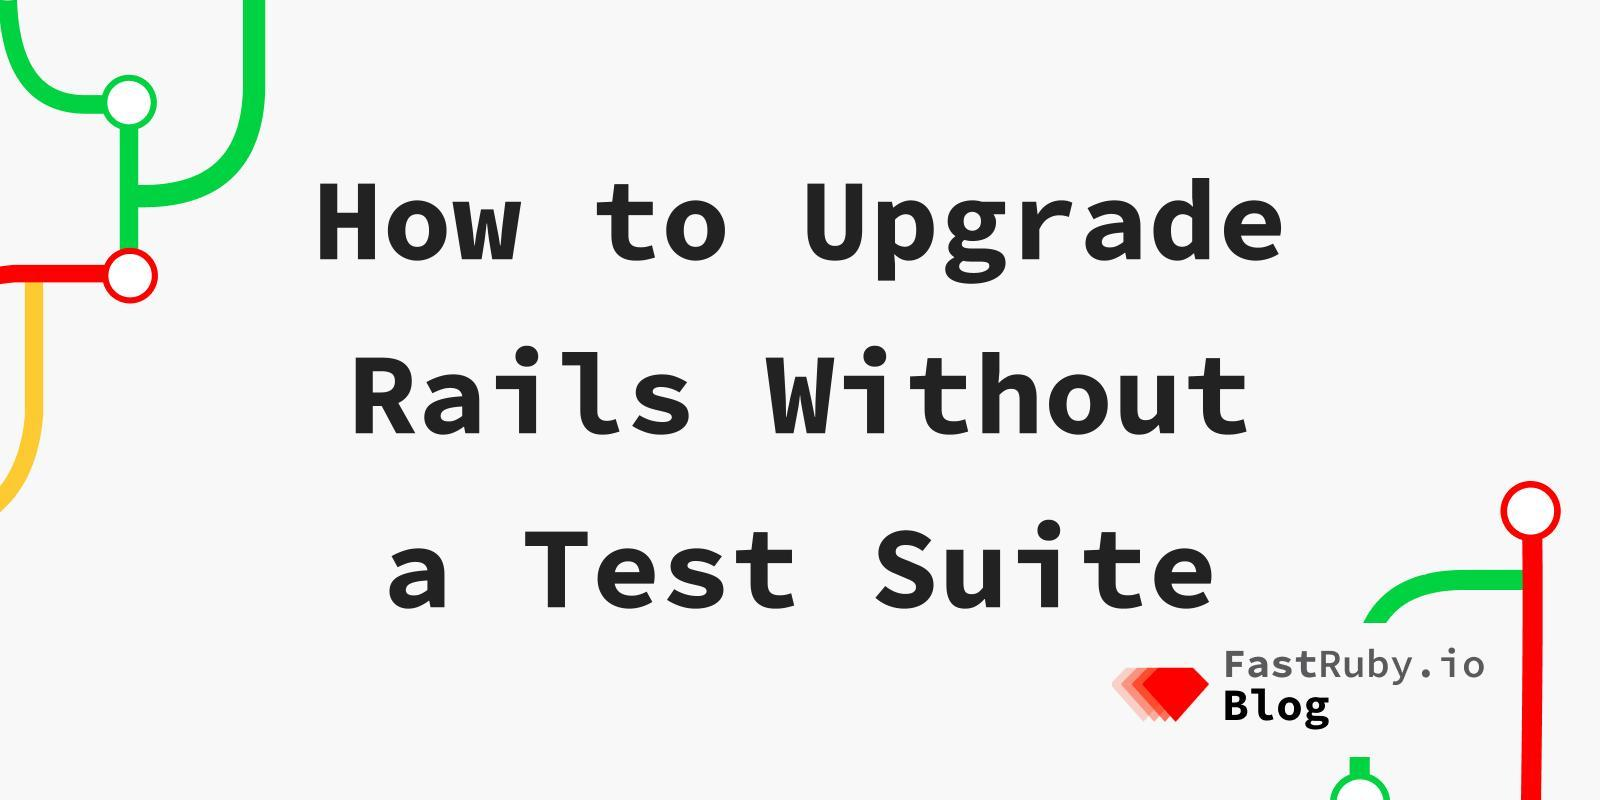 How to Upgrade Rails Without a Test Suite